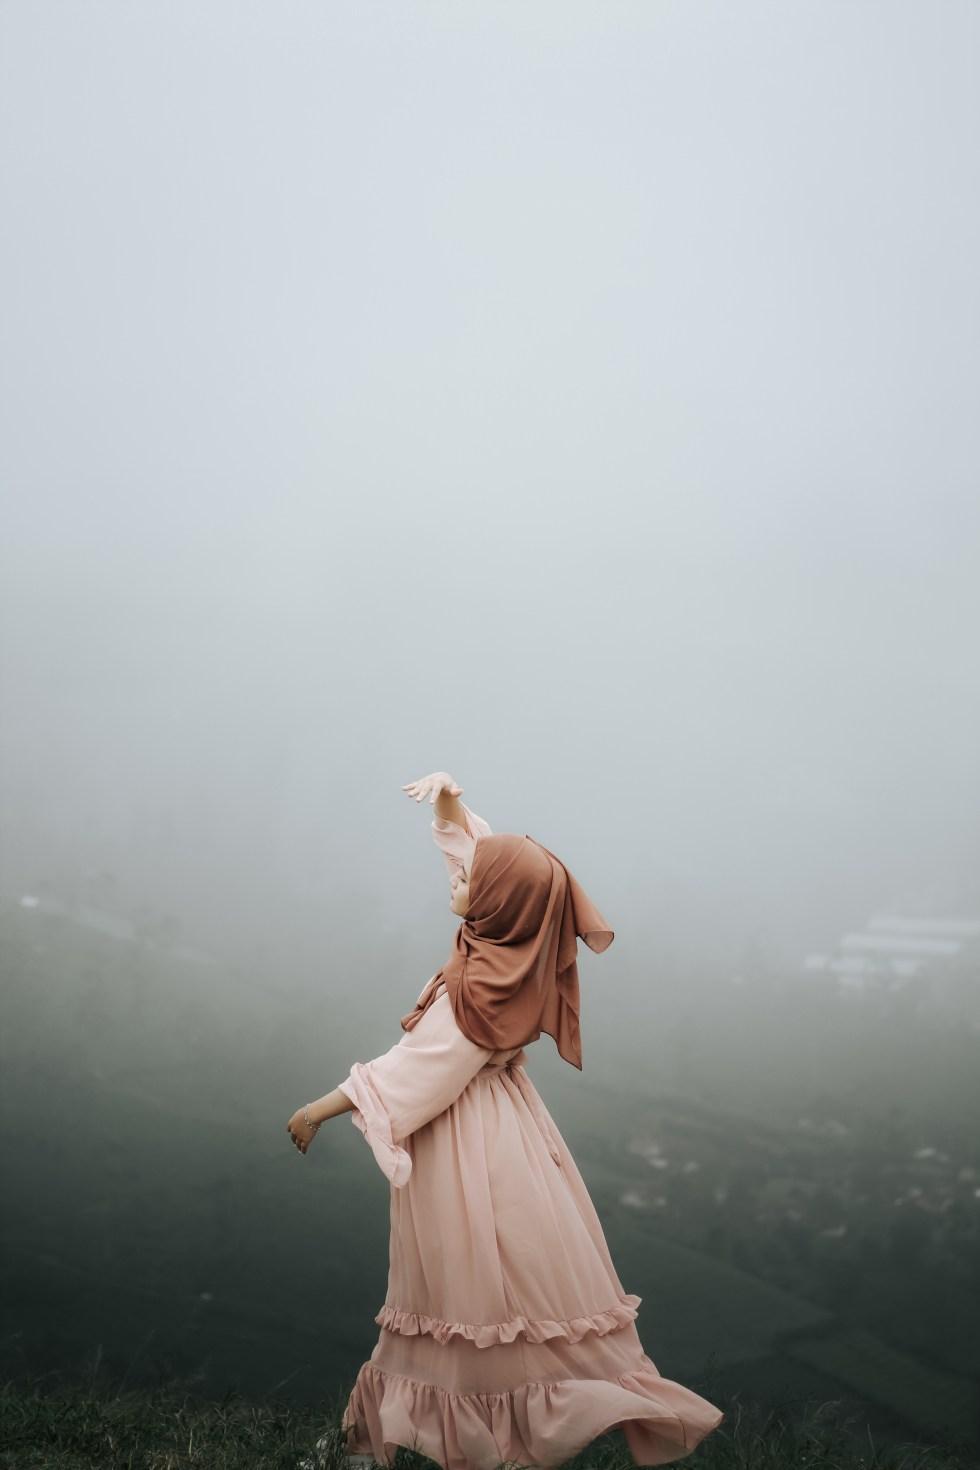 Woman in Pink Dress Standing on Foggy Environment